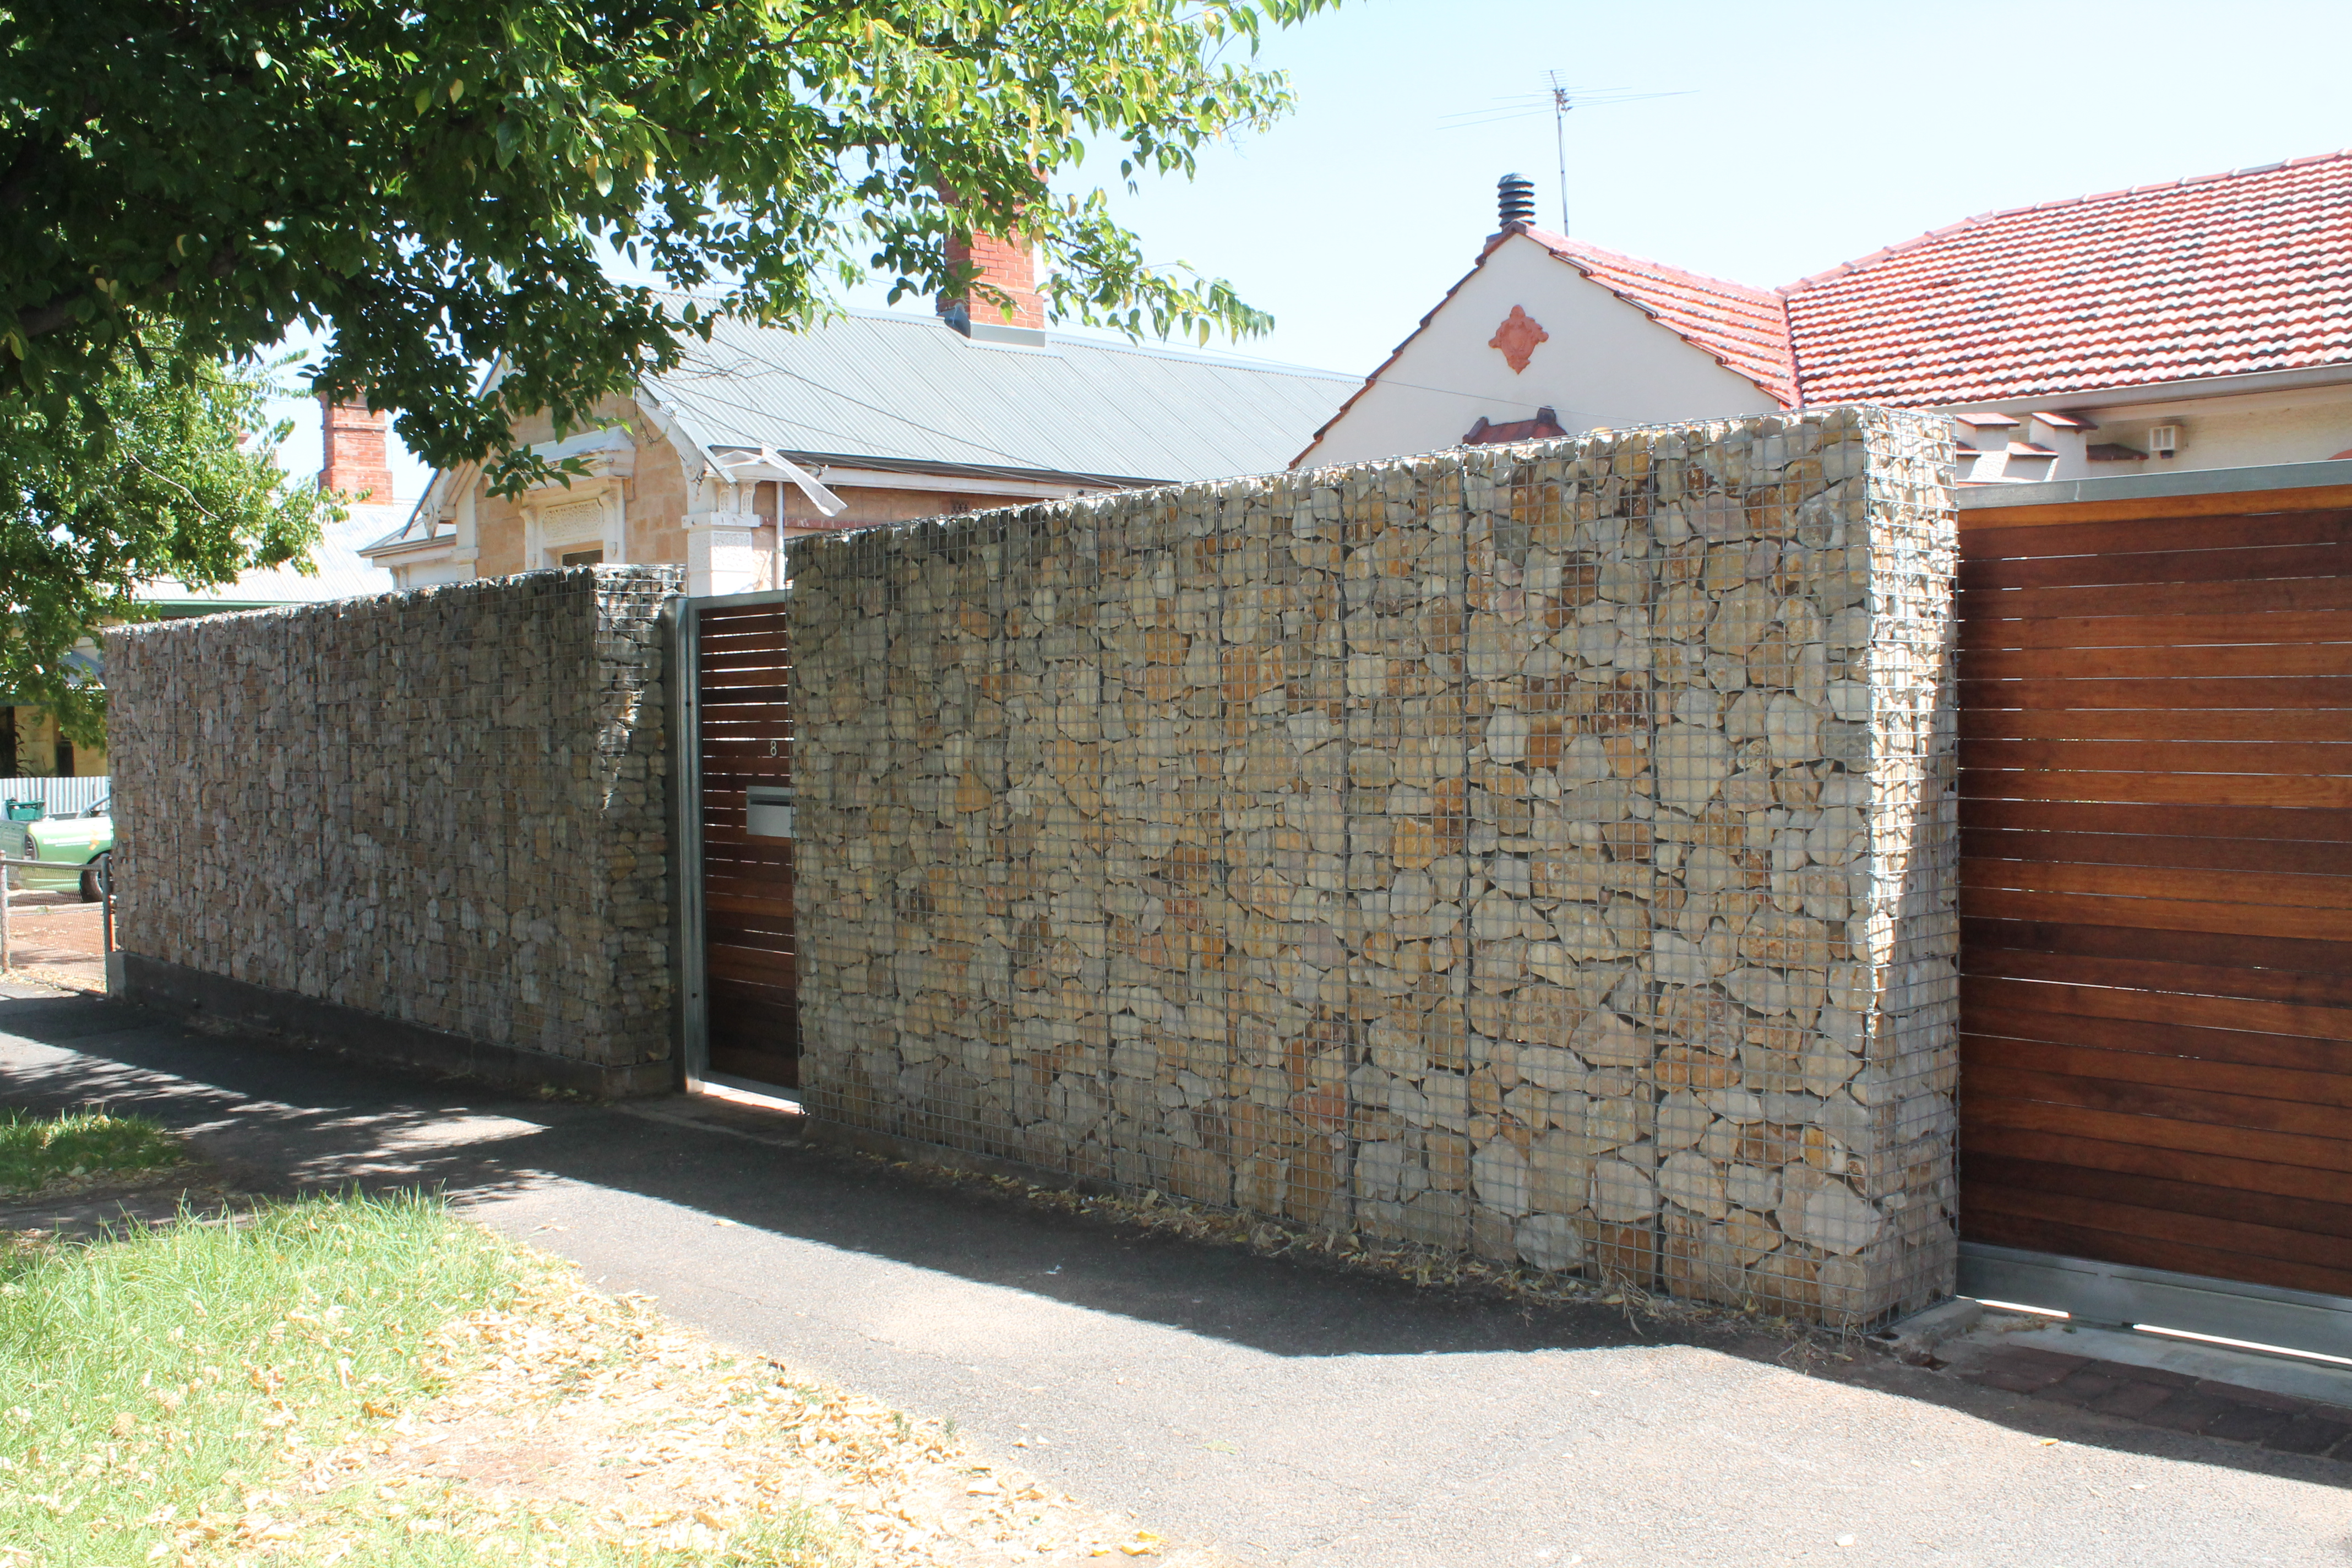 Sound Proof Your Home With Gabions Adelaide Prospect Contractors